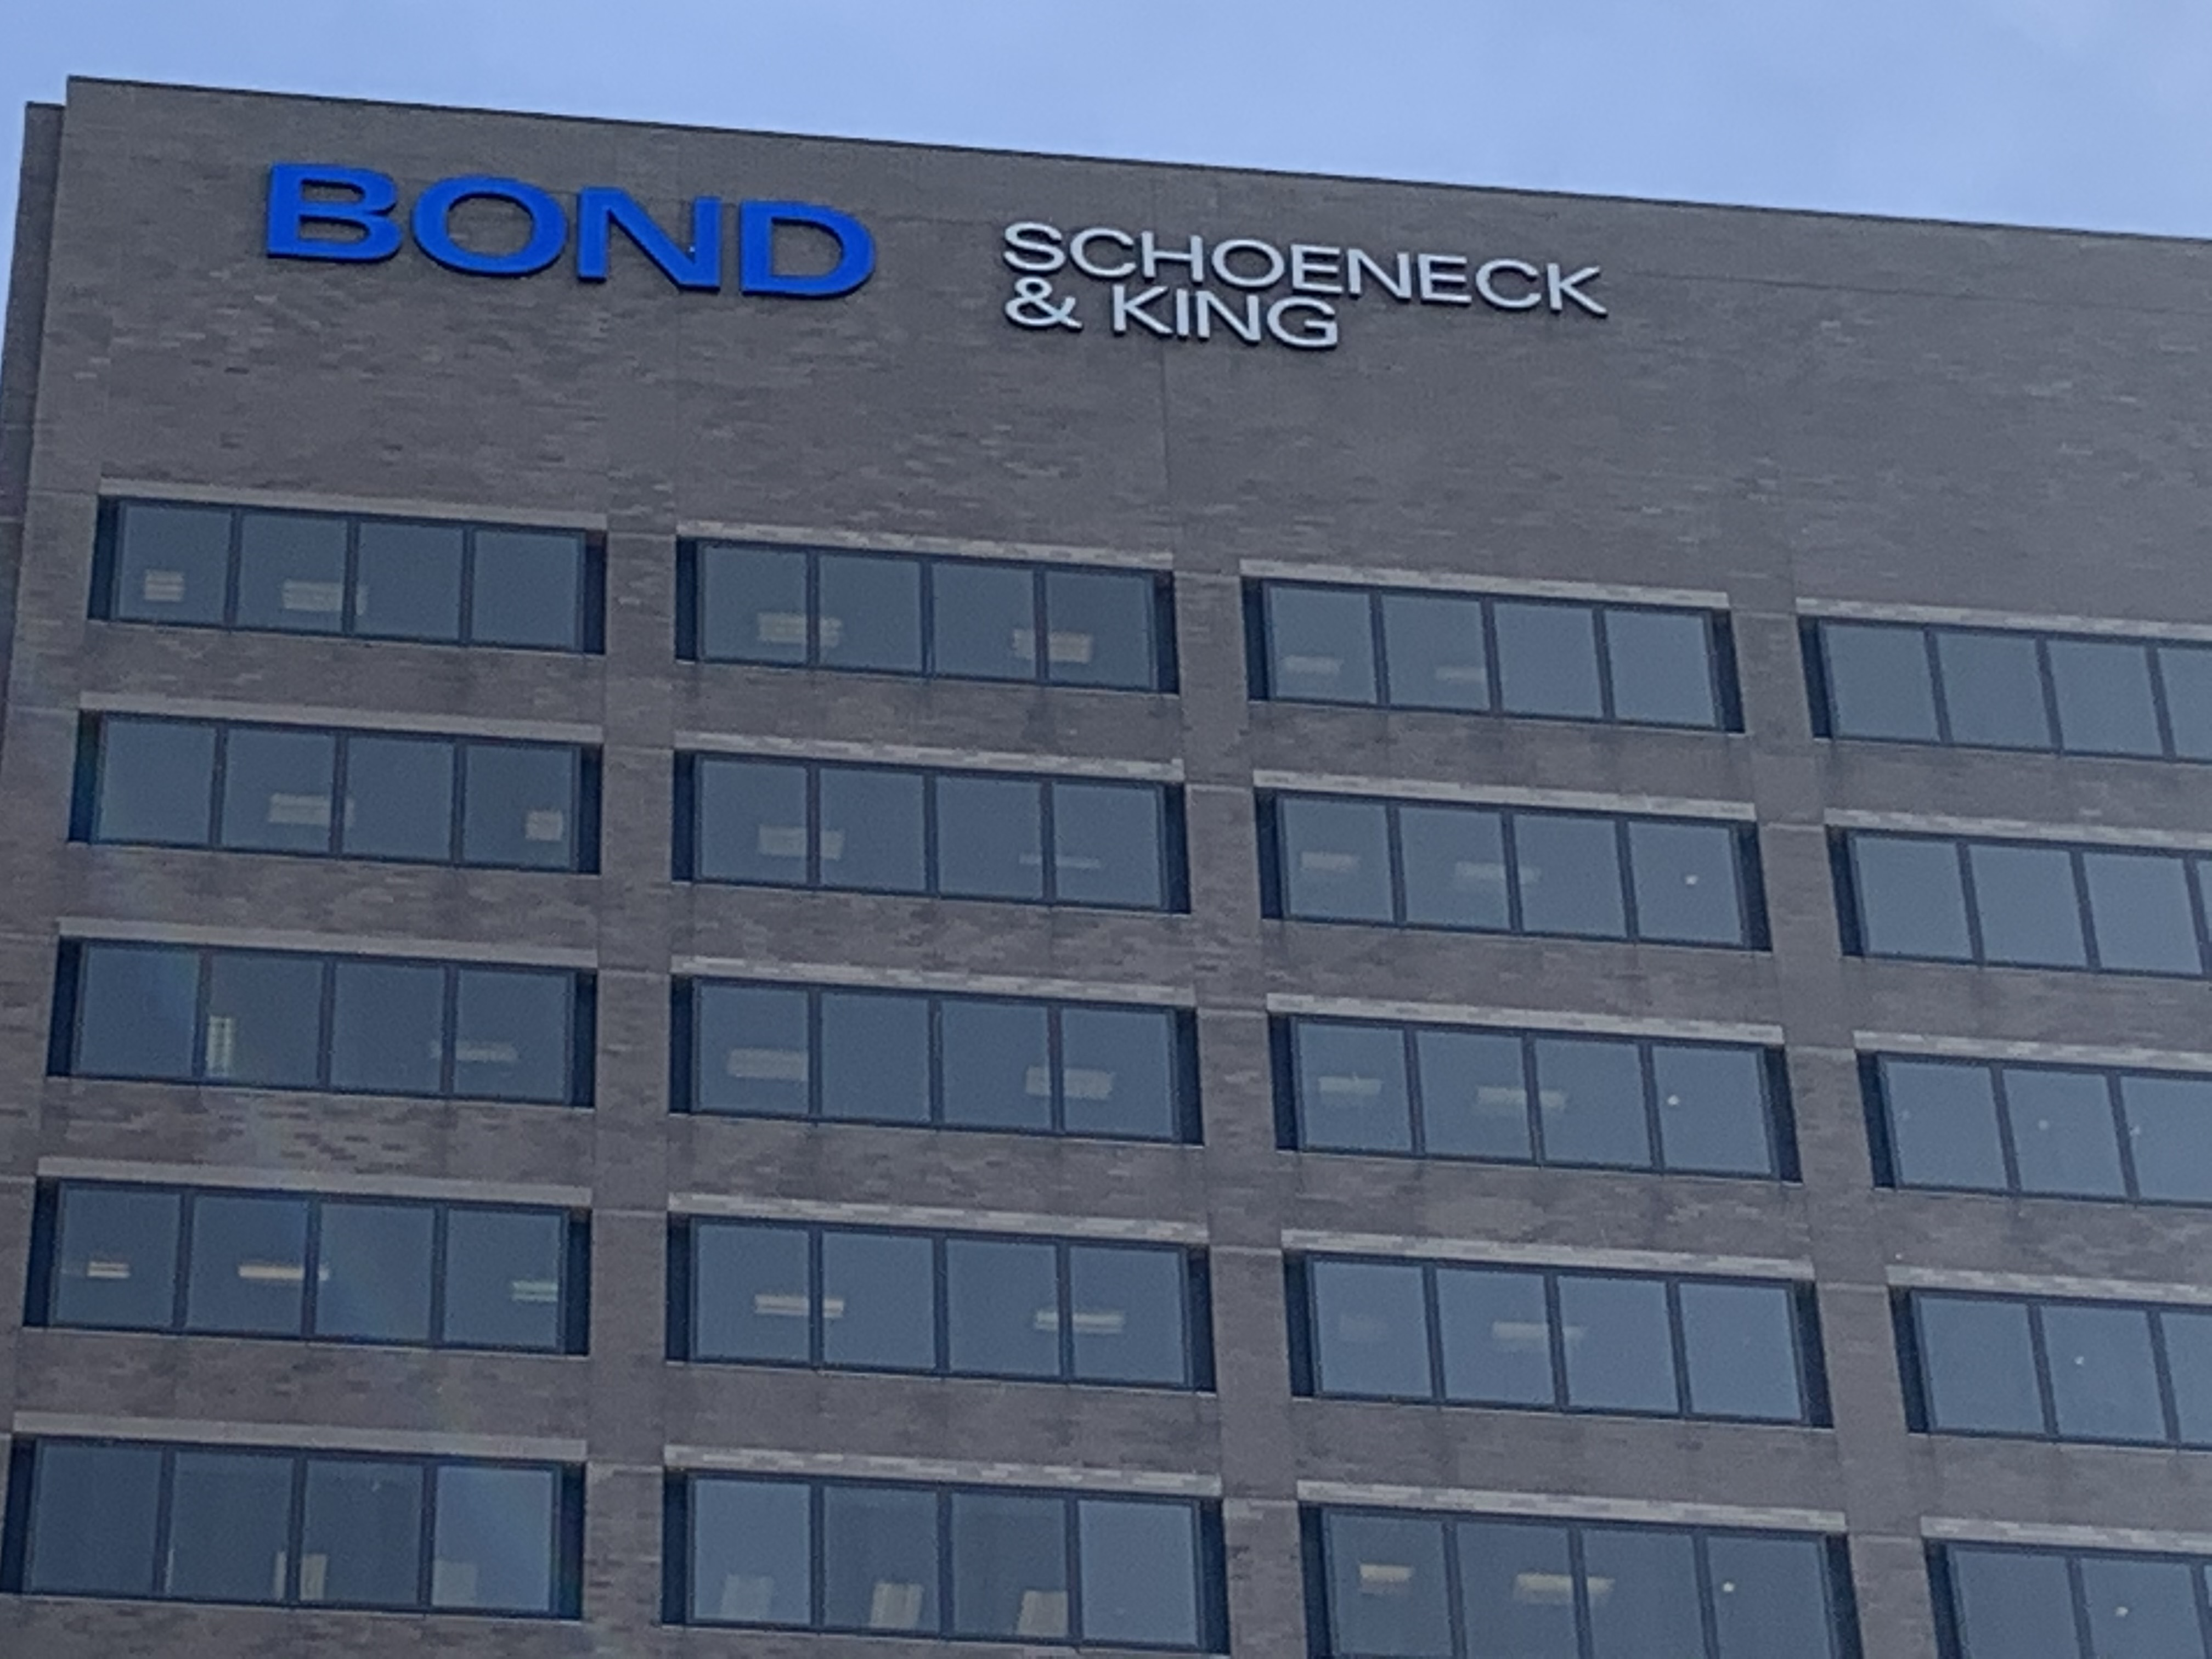 Syracuse S Bond Schoeneck King To Acquire 155 Year Old New York City Law Firm Syracuse Com